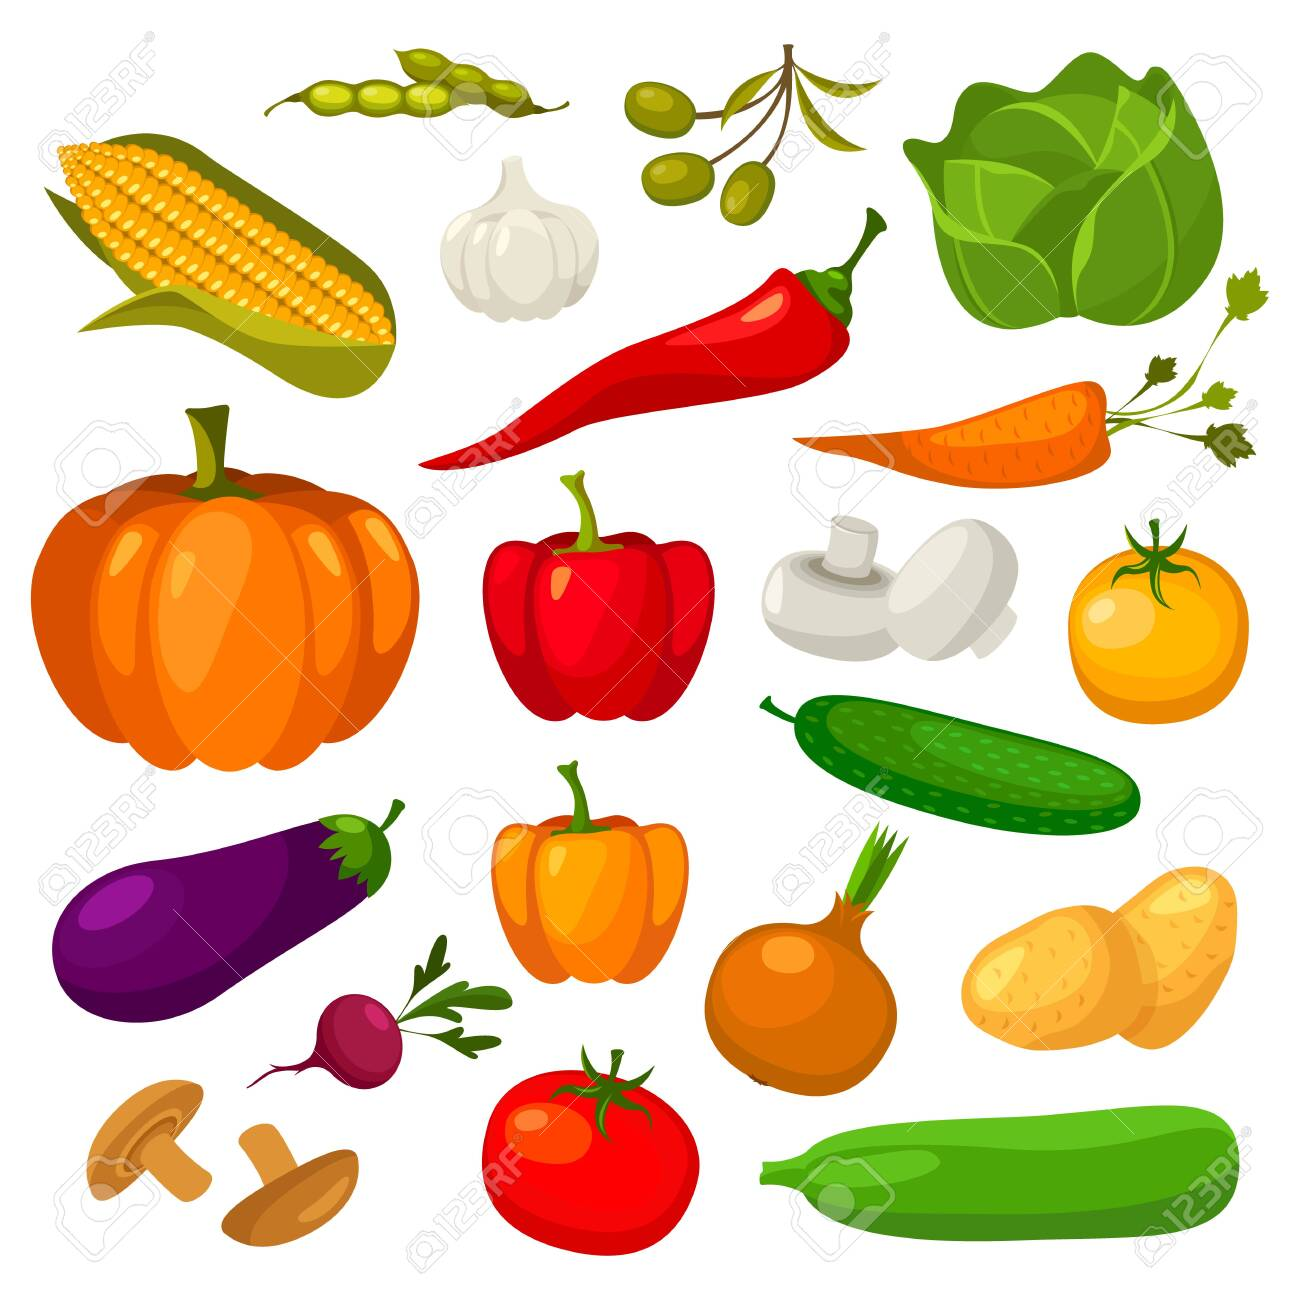 Vegetables flat icons, vector veggies, vegetarian salad and cooking ingredients set. Organic bio farm vegetables cabbage, pepper and garlic, beans, pumpkin and cucumber, potato, beans and mushrooms - 142881464